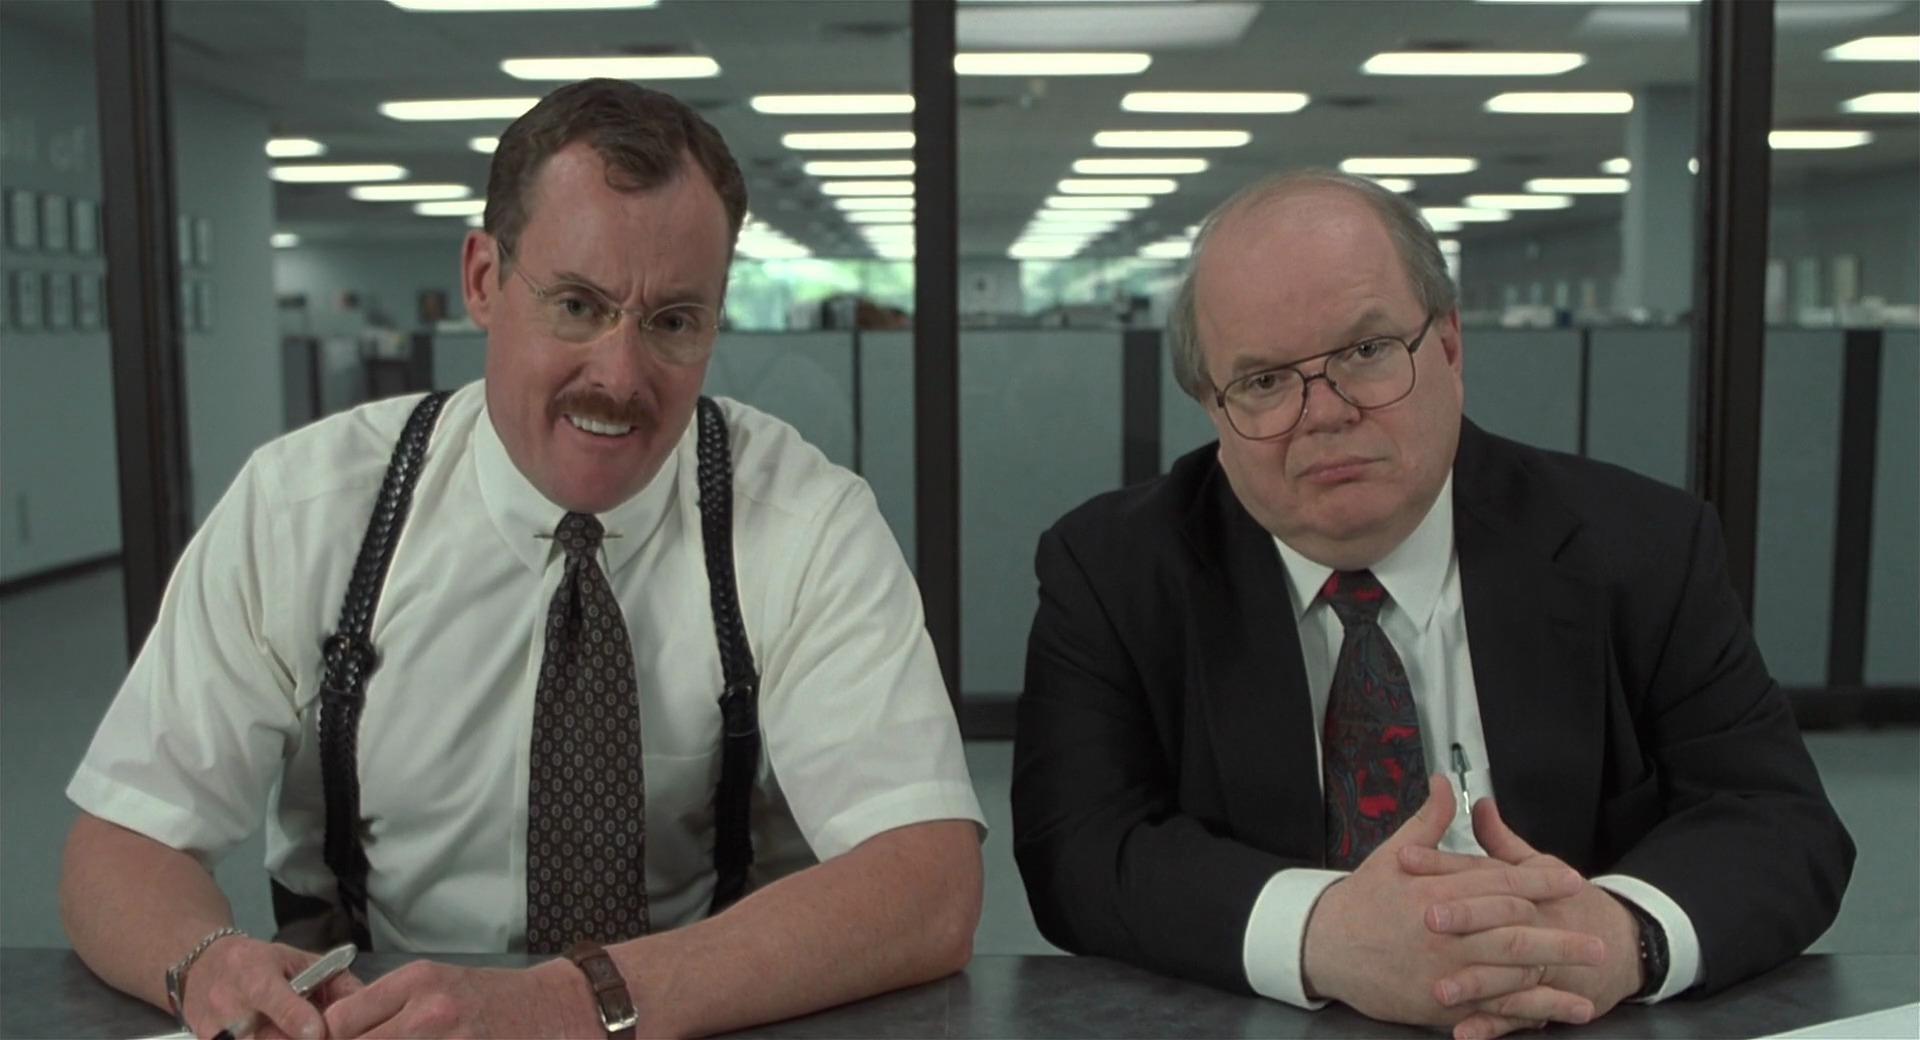 office space cast where are they now the moviefone blog